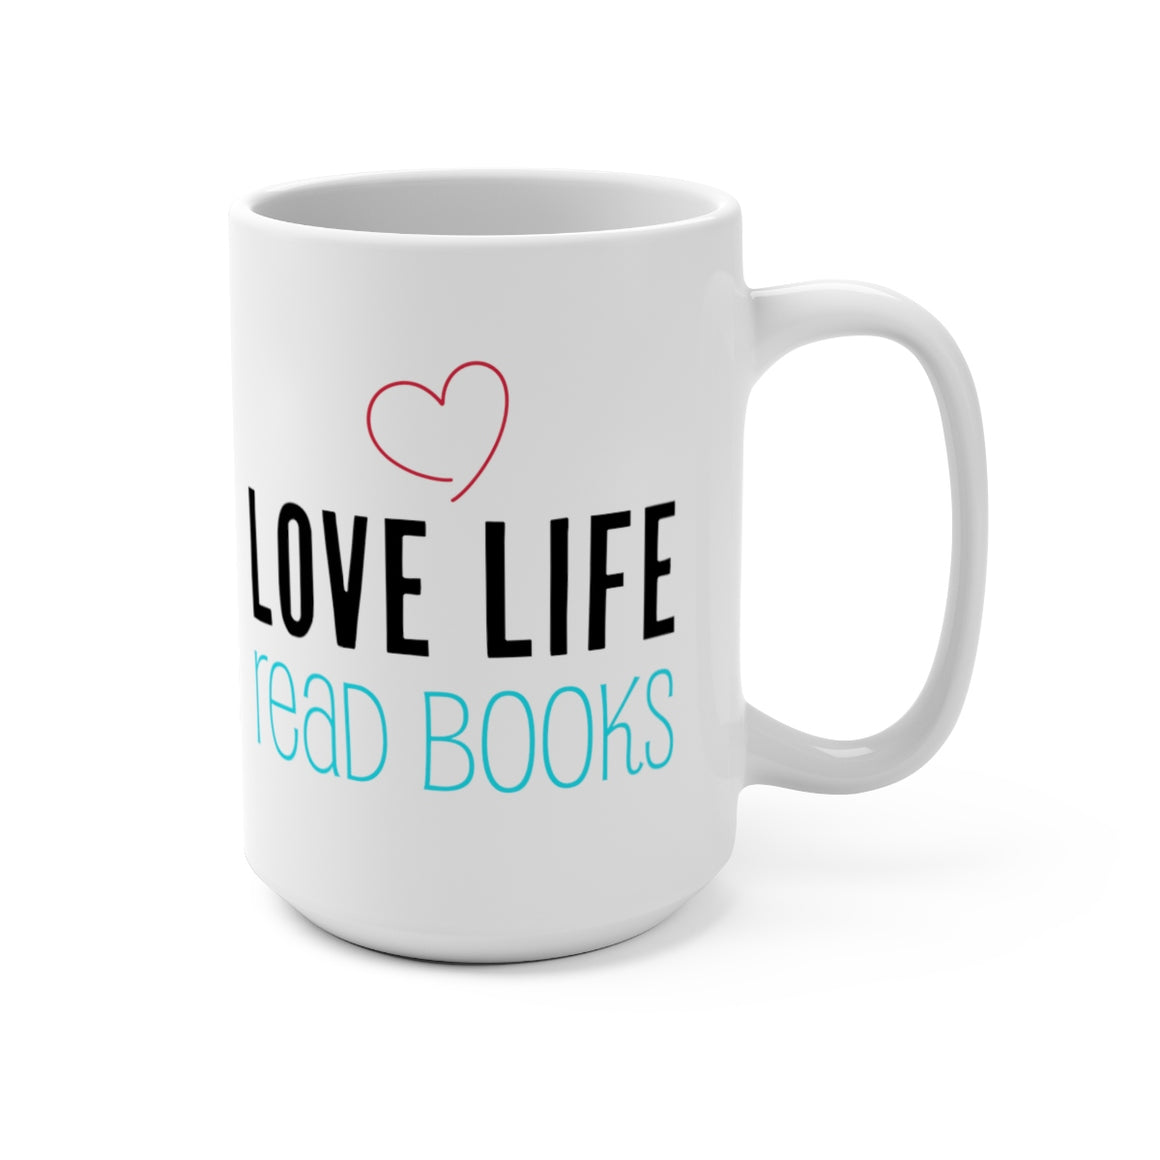 Love Life Read Books Mug 15oz